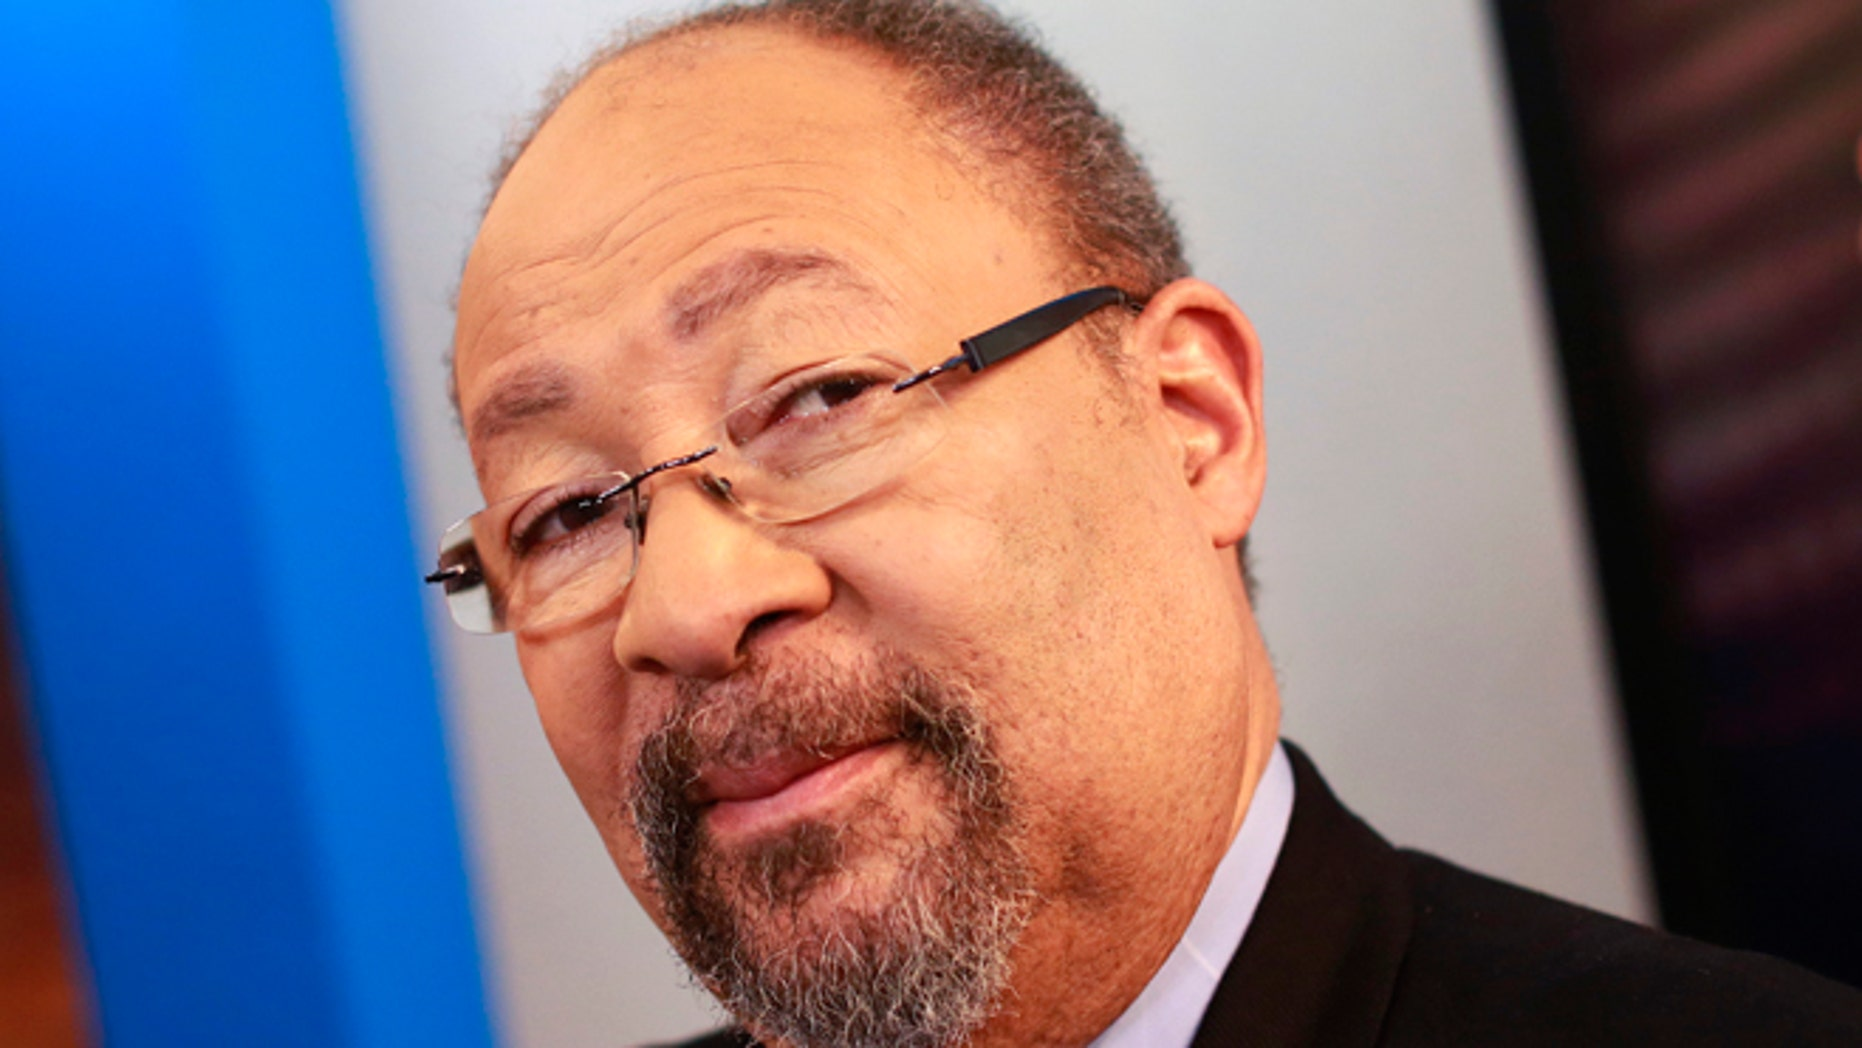 Dec. 18, 2013: Richard Parsons, the former chairman of Citigroup and former chairman and CEO of Time Warner, poses in New York. (Reuters)